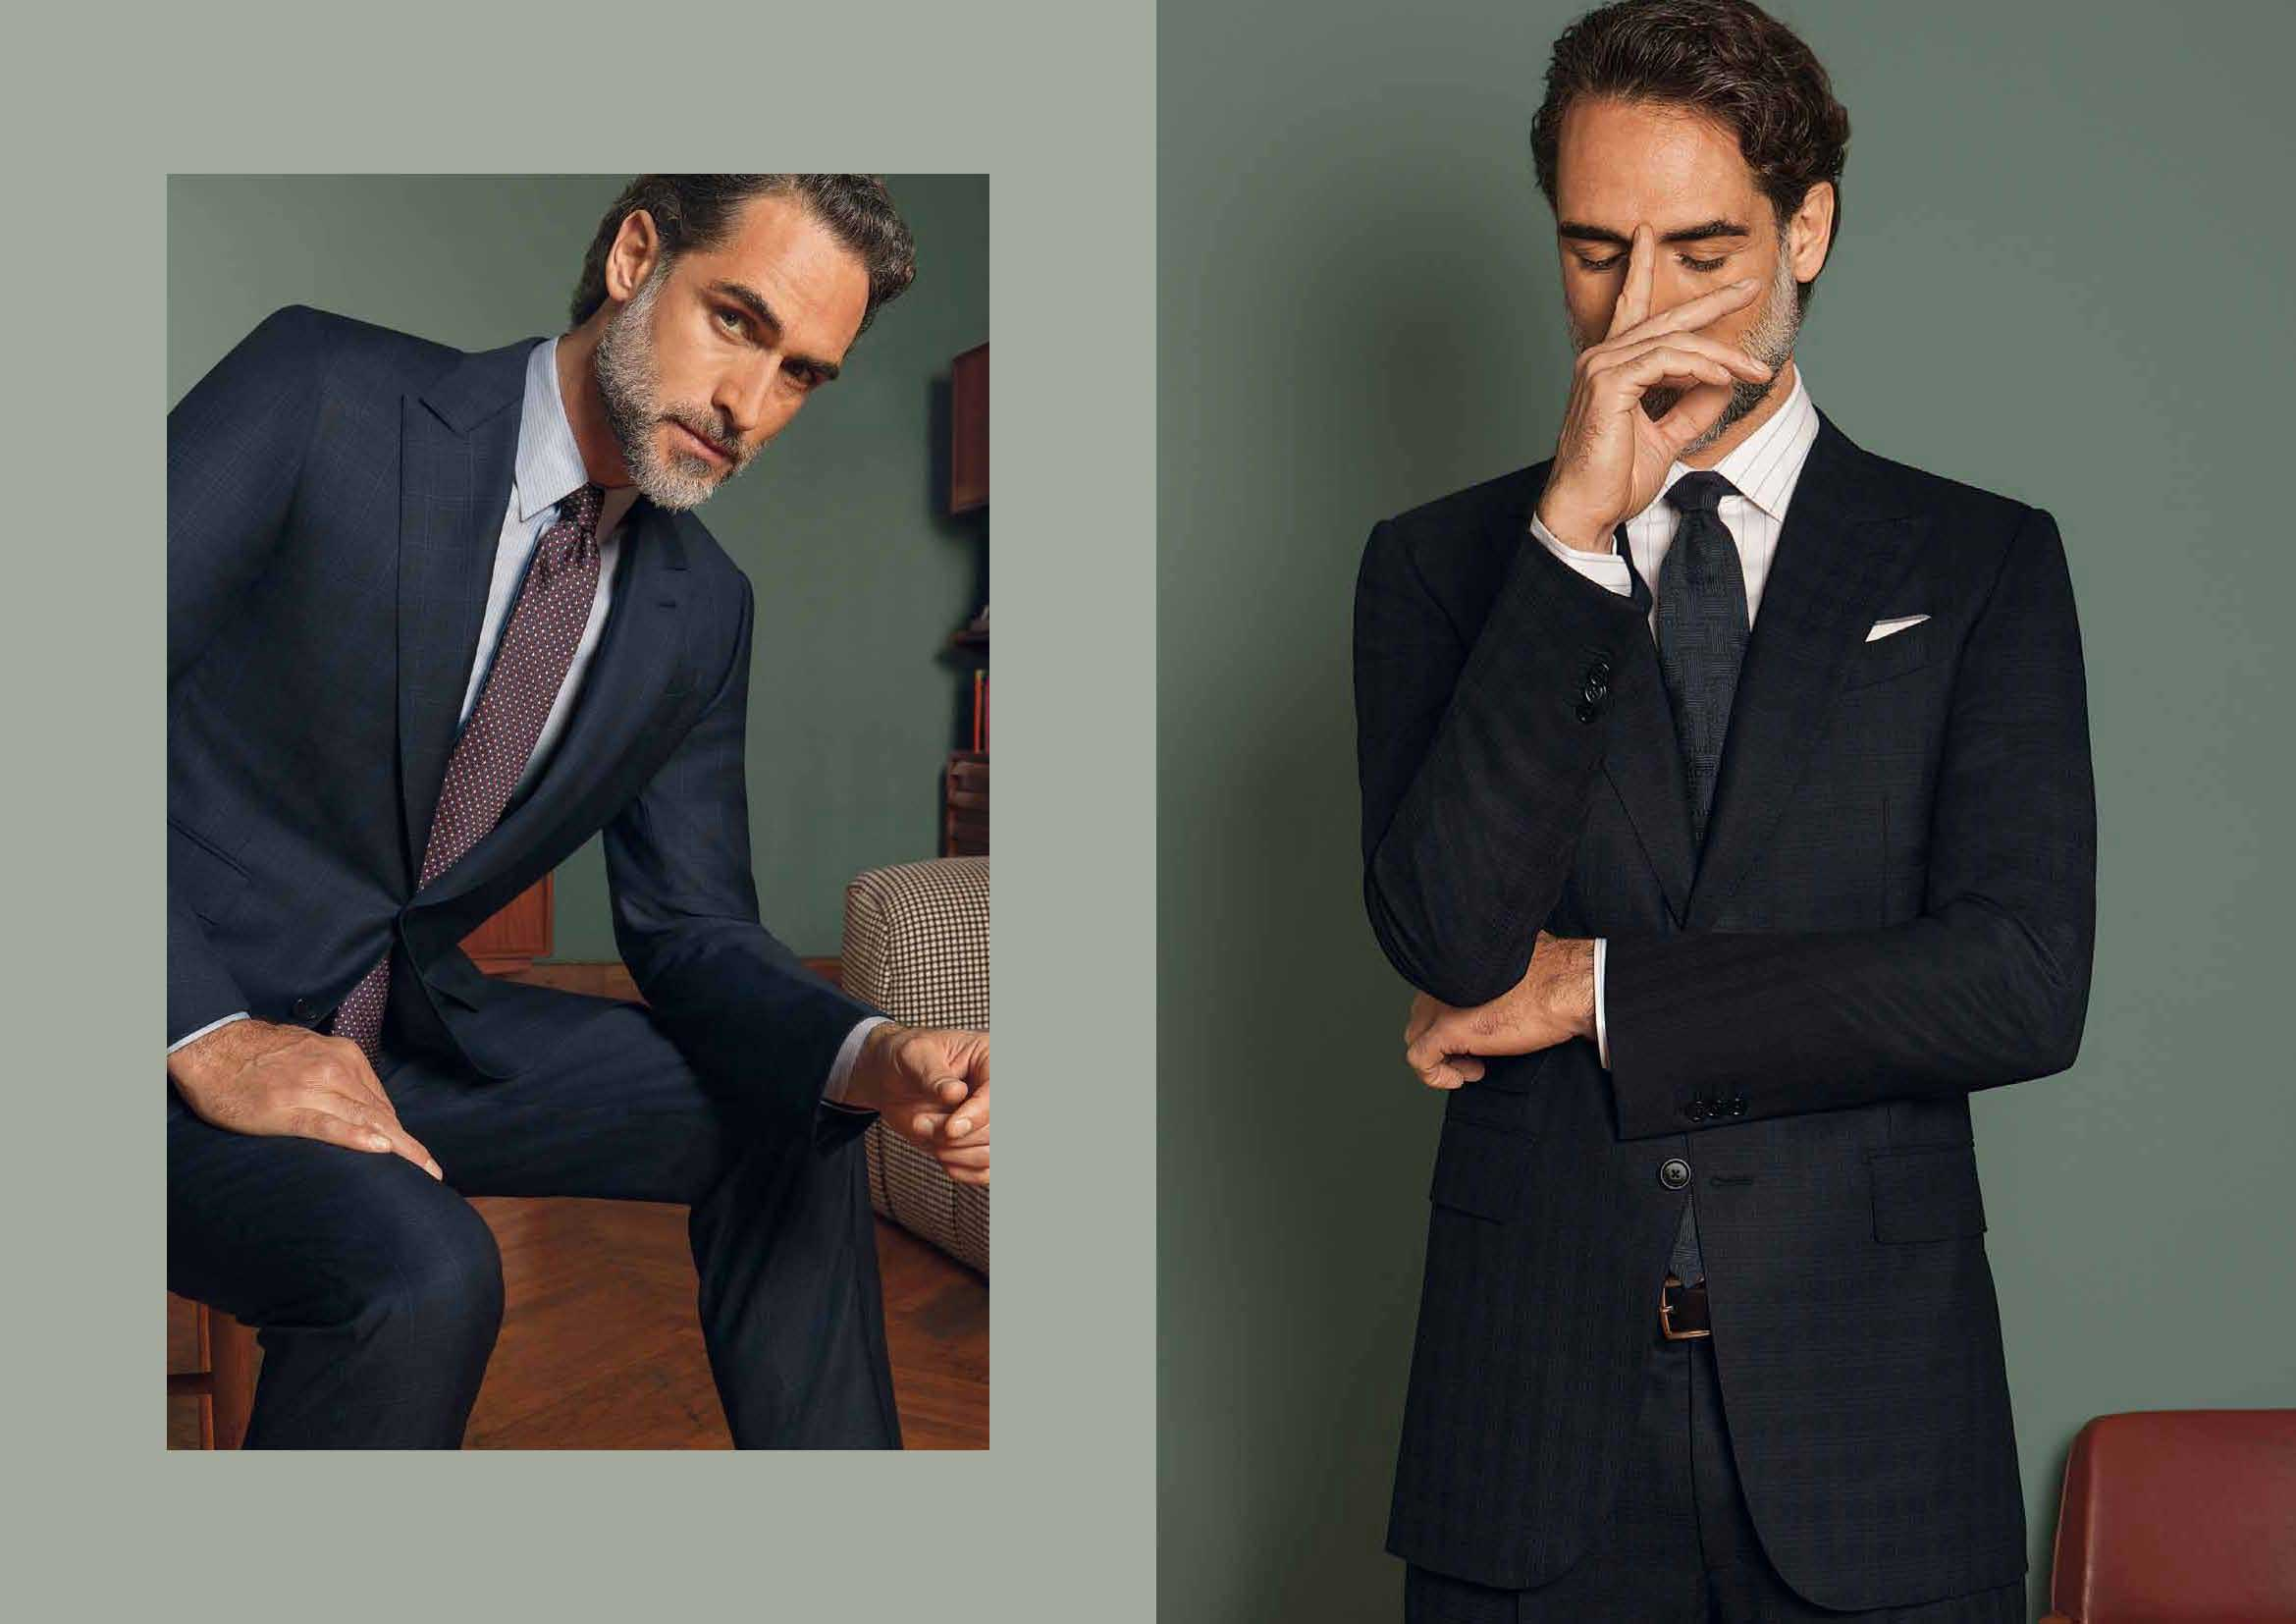 attachments/events/Zegna2017-2018/Page_10.jpg